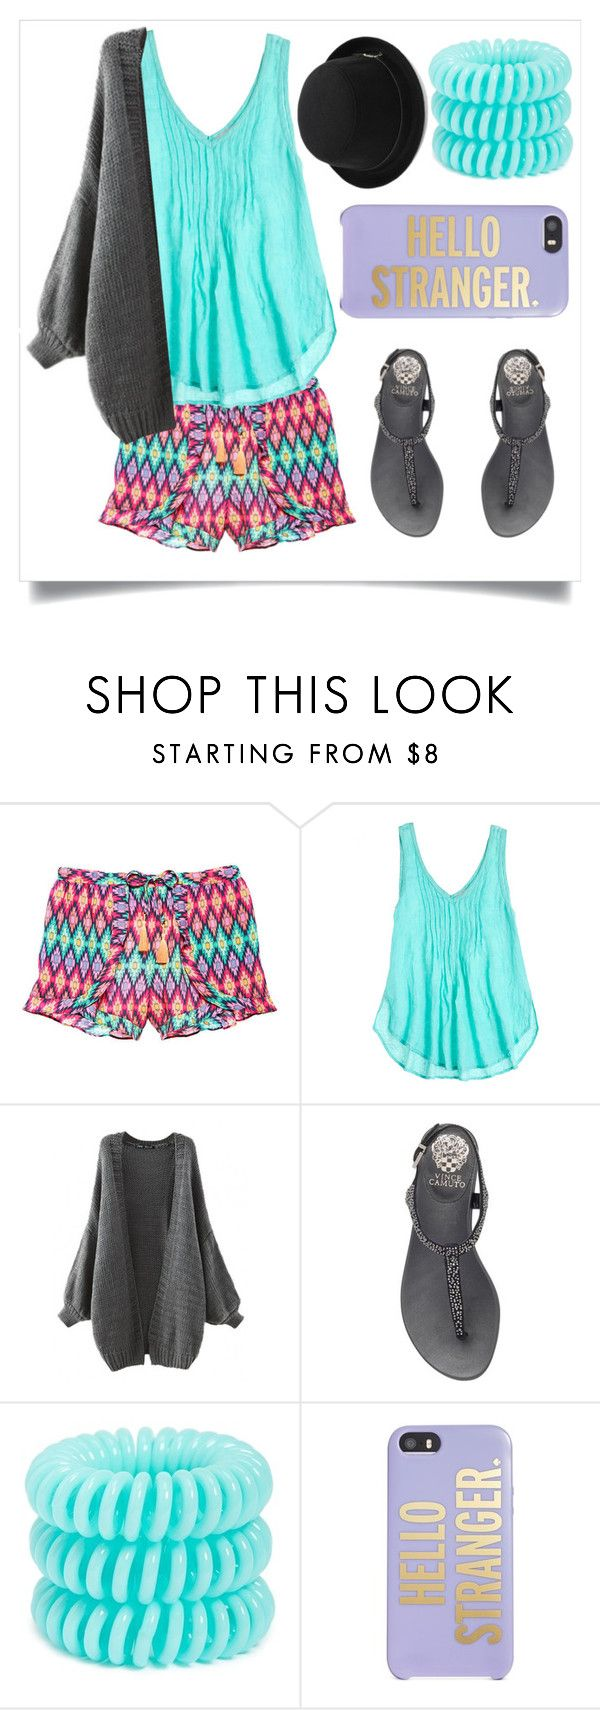 """""""Strangers"""" by chanlee-luv ❤ liked on Polyvore featuring Victoria's Secret, Calypso St. Barth, Vince Camuto, Invisibobble, Kate Spade, women's clothing, women, female, woman and misses"""